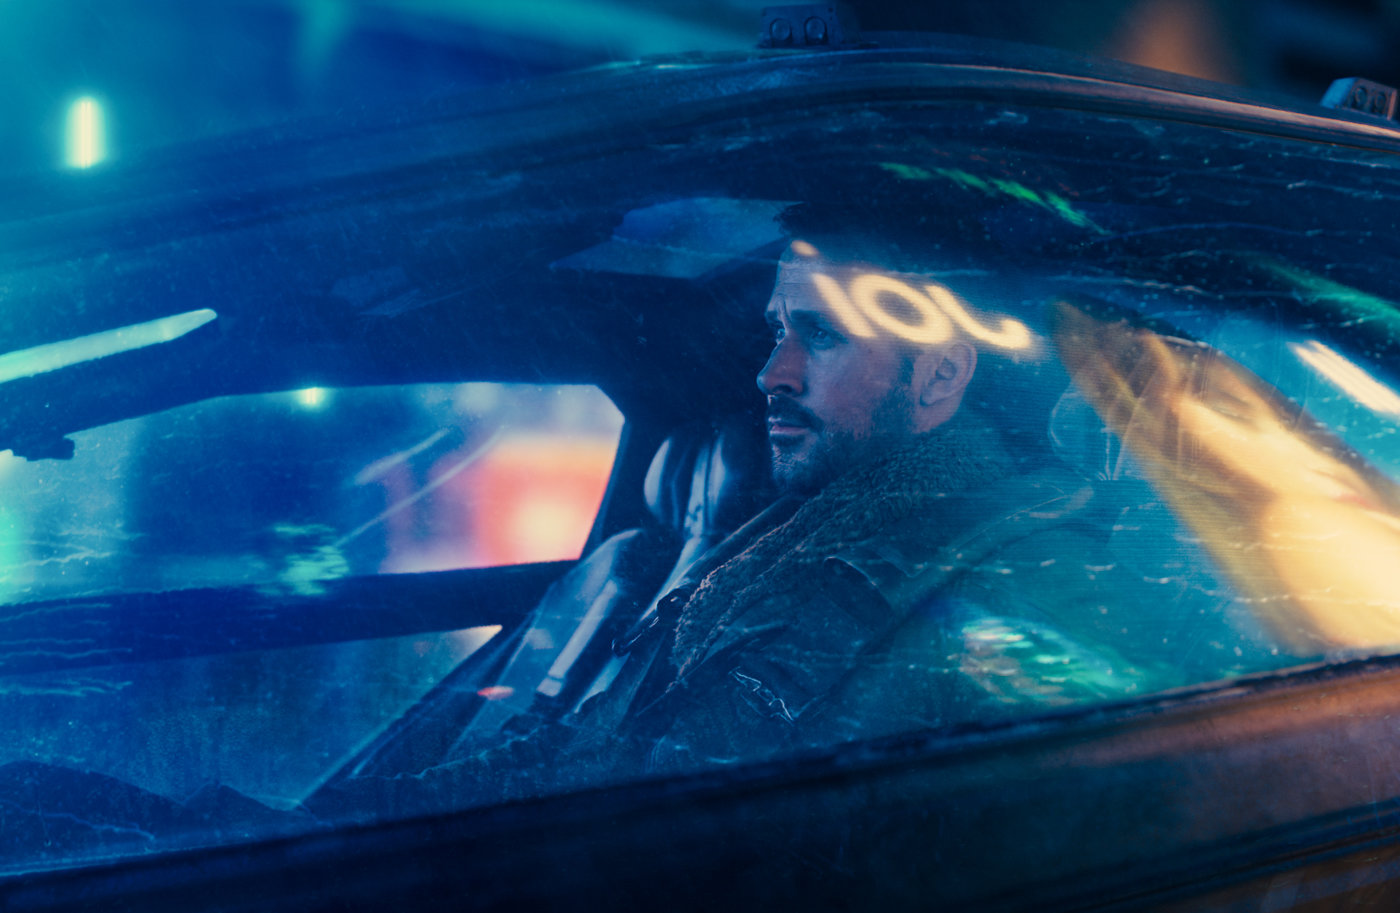 movie review blade runner · watch video· blade runner 2049 has defied all odds to become one of the greatest the jungle movie review the shape of water review blade runner 2049 review.